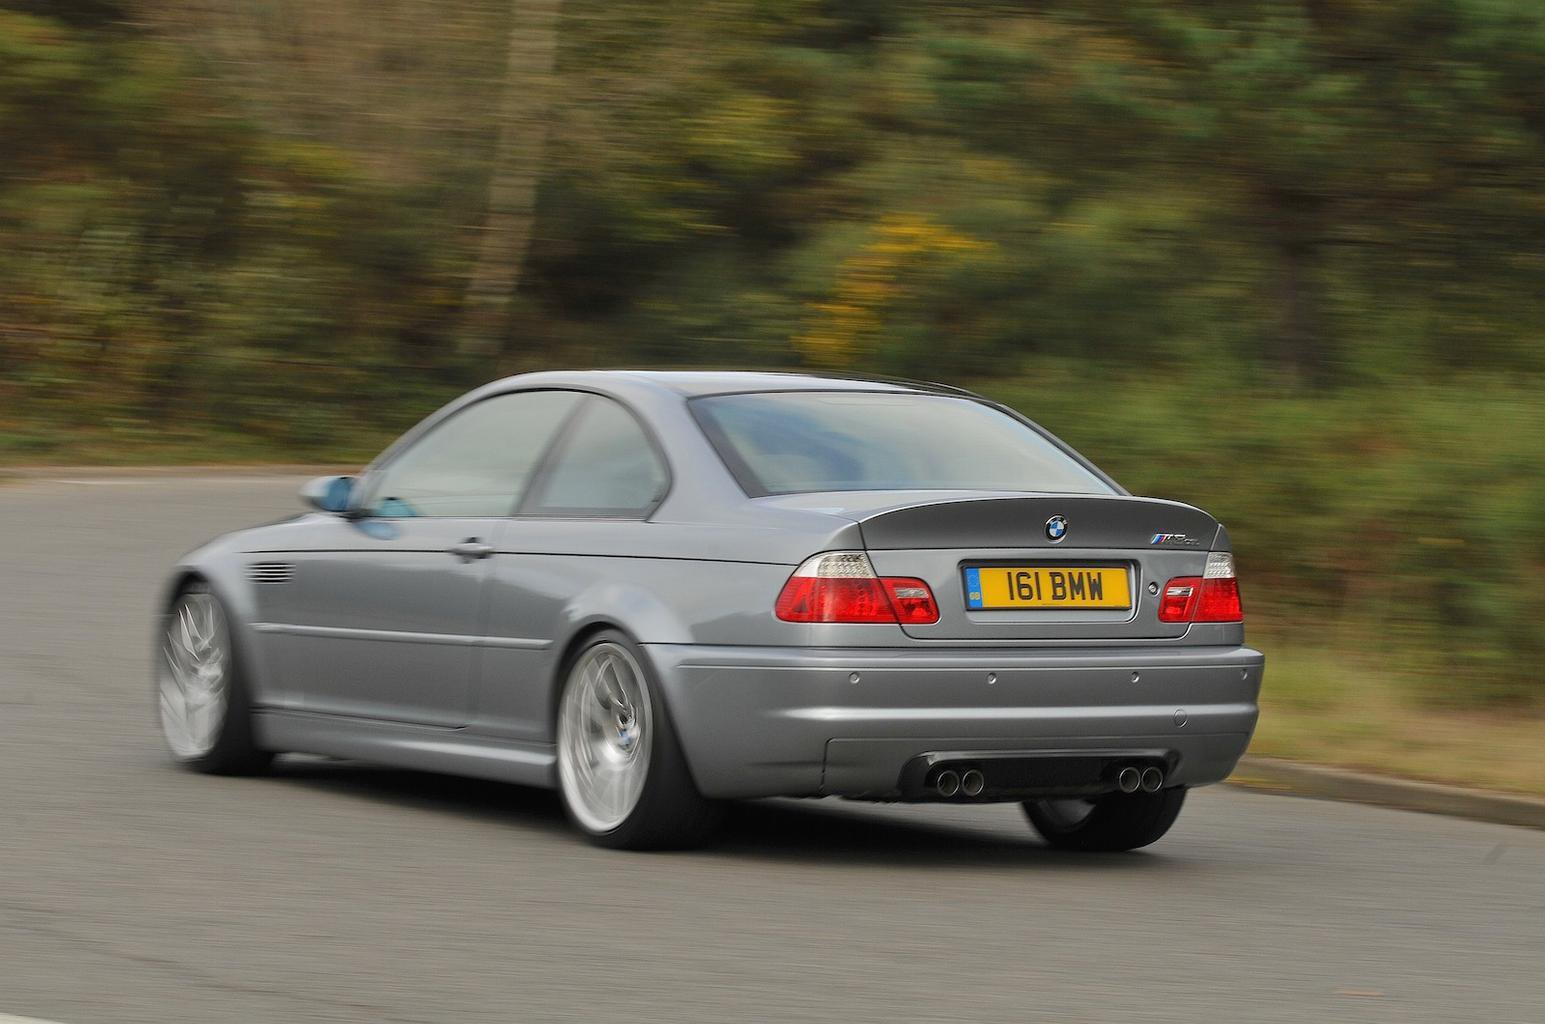 Bmw M3 E46 Rewind Wednesday What Car